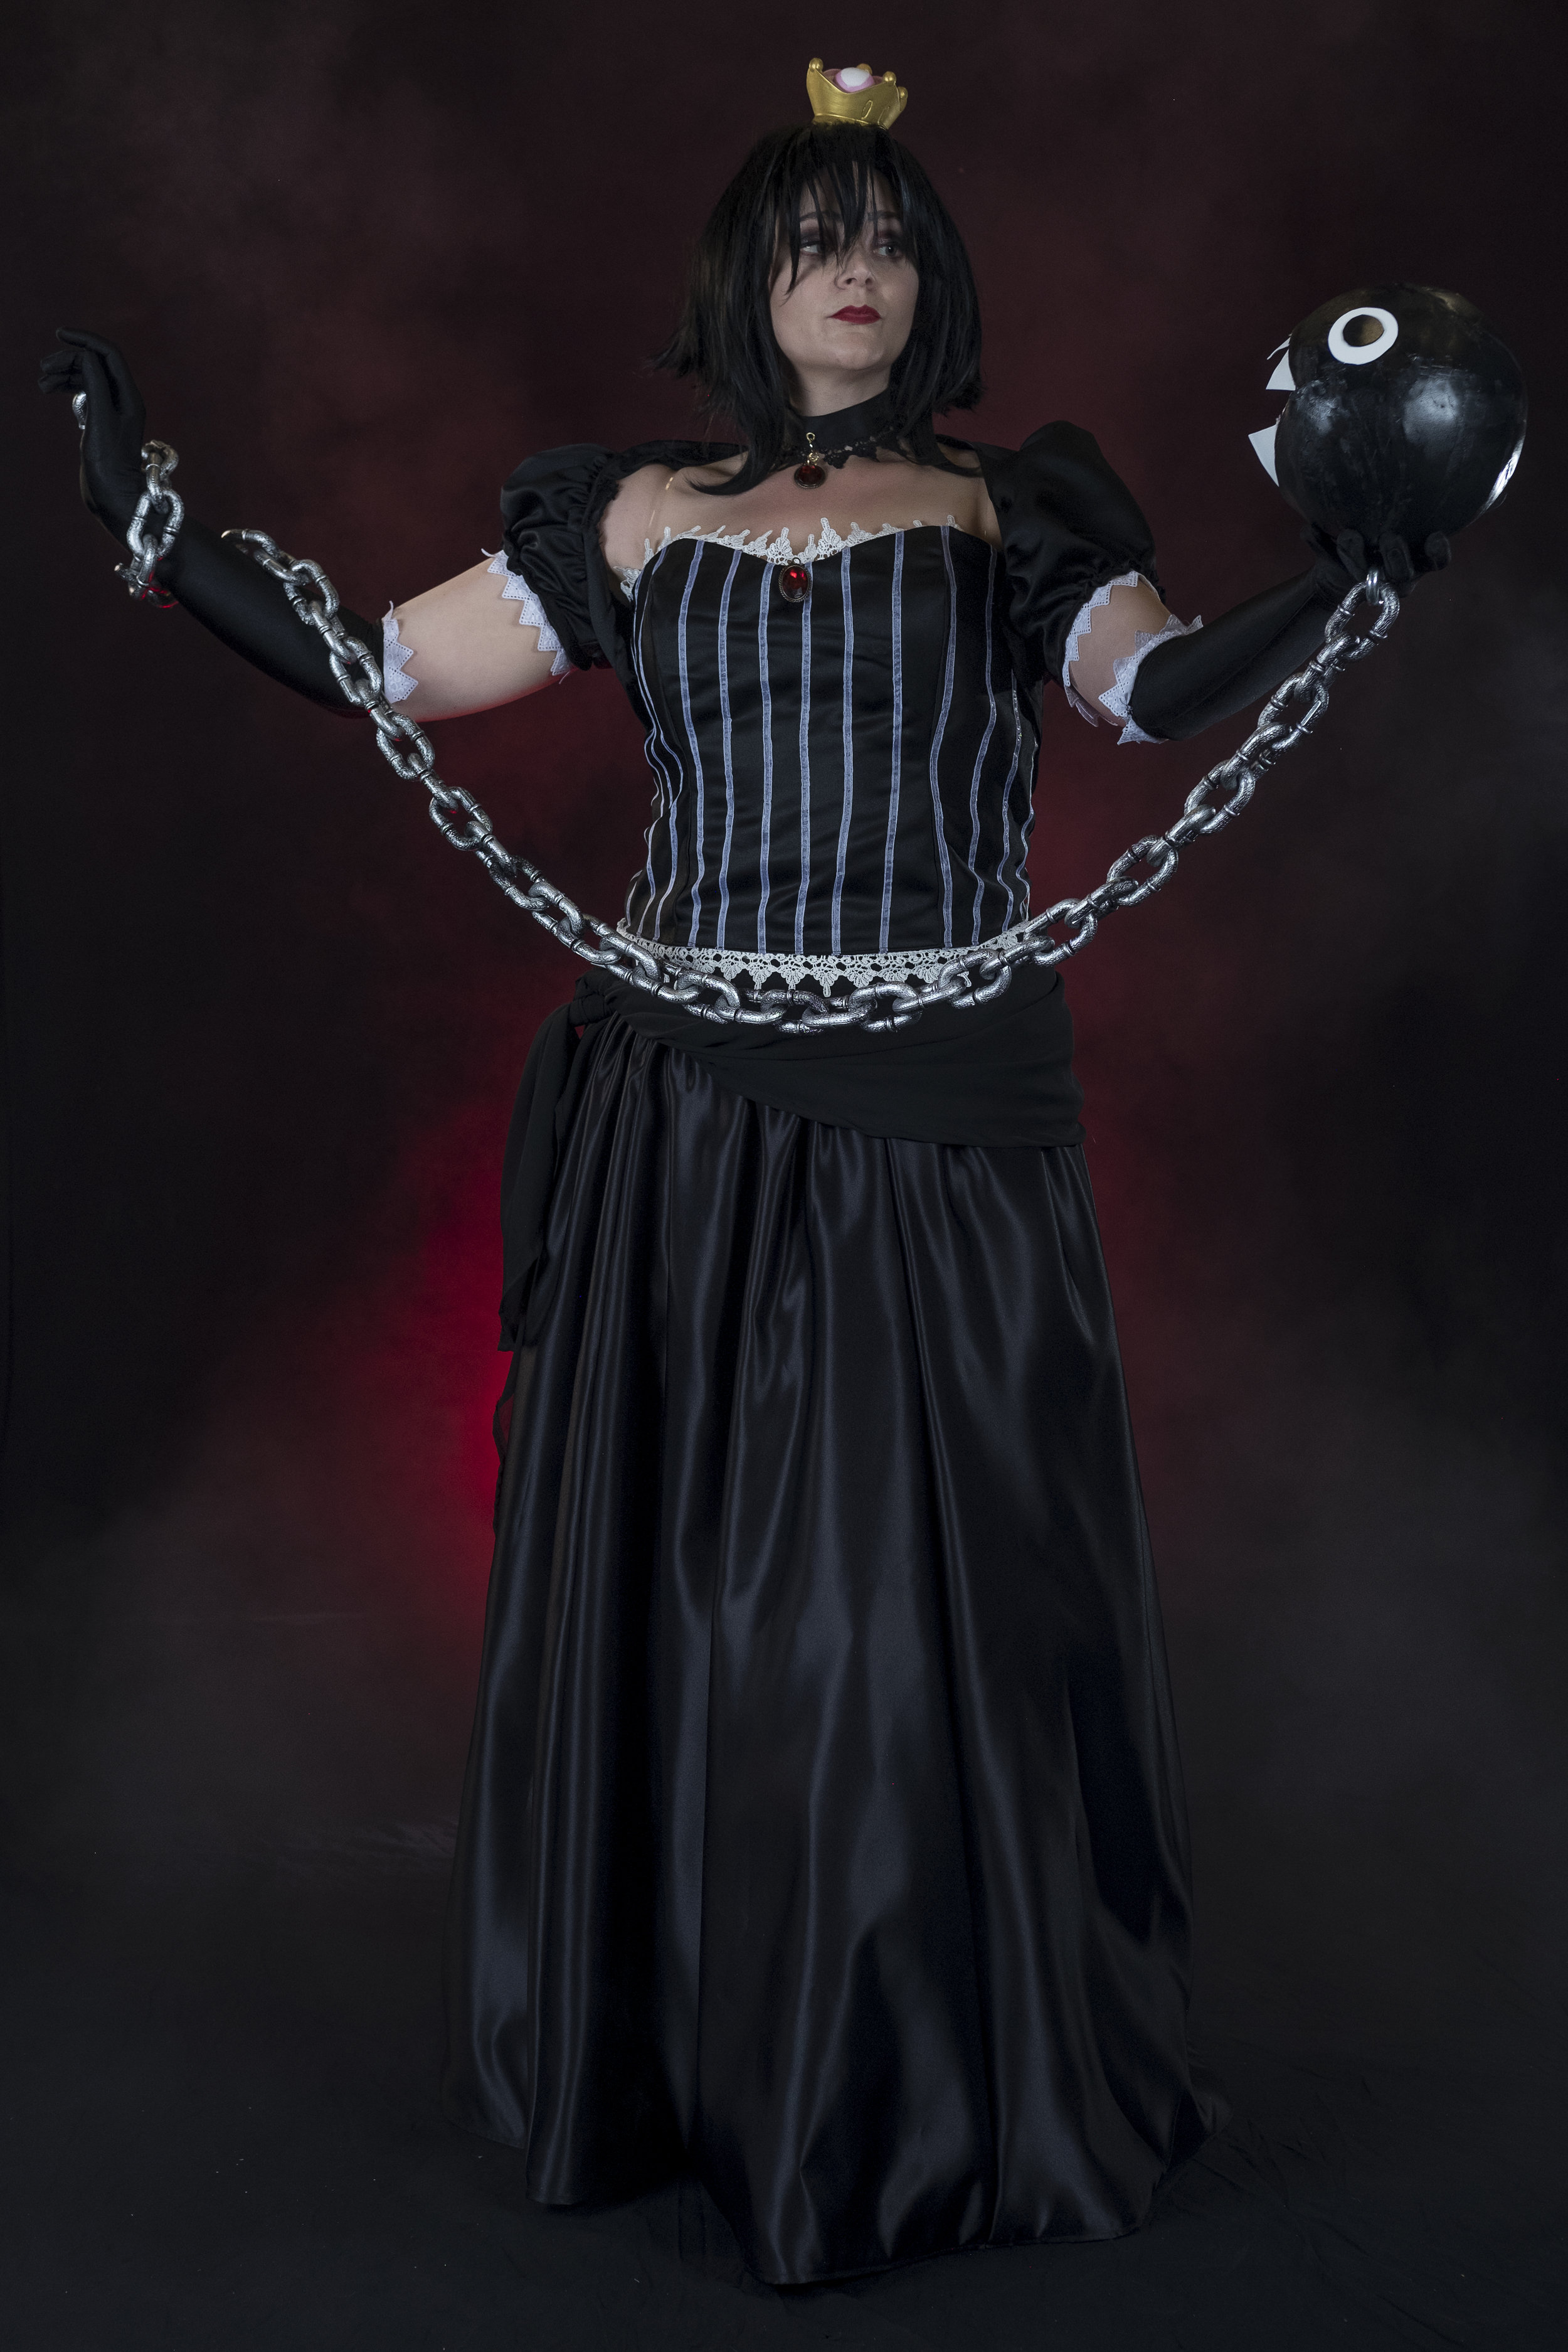 Allybelle Cosplay cosplaying as Ann4rt's Chompette posing with a Chain Chomp